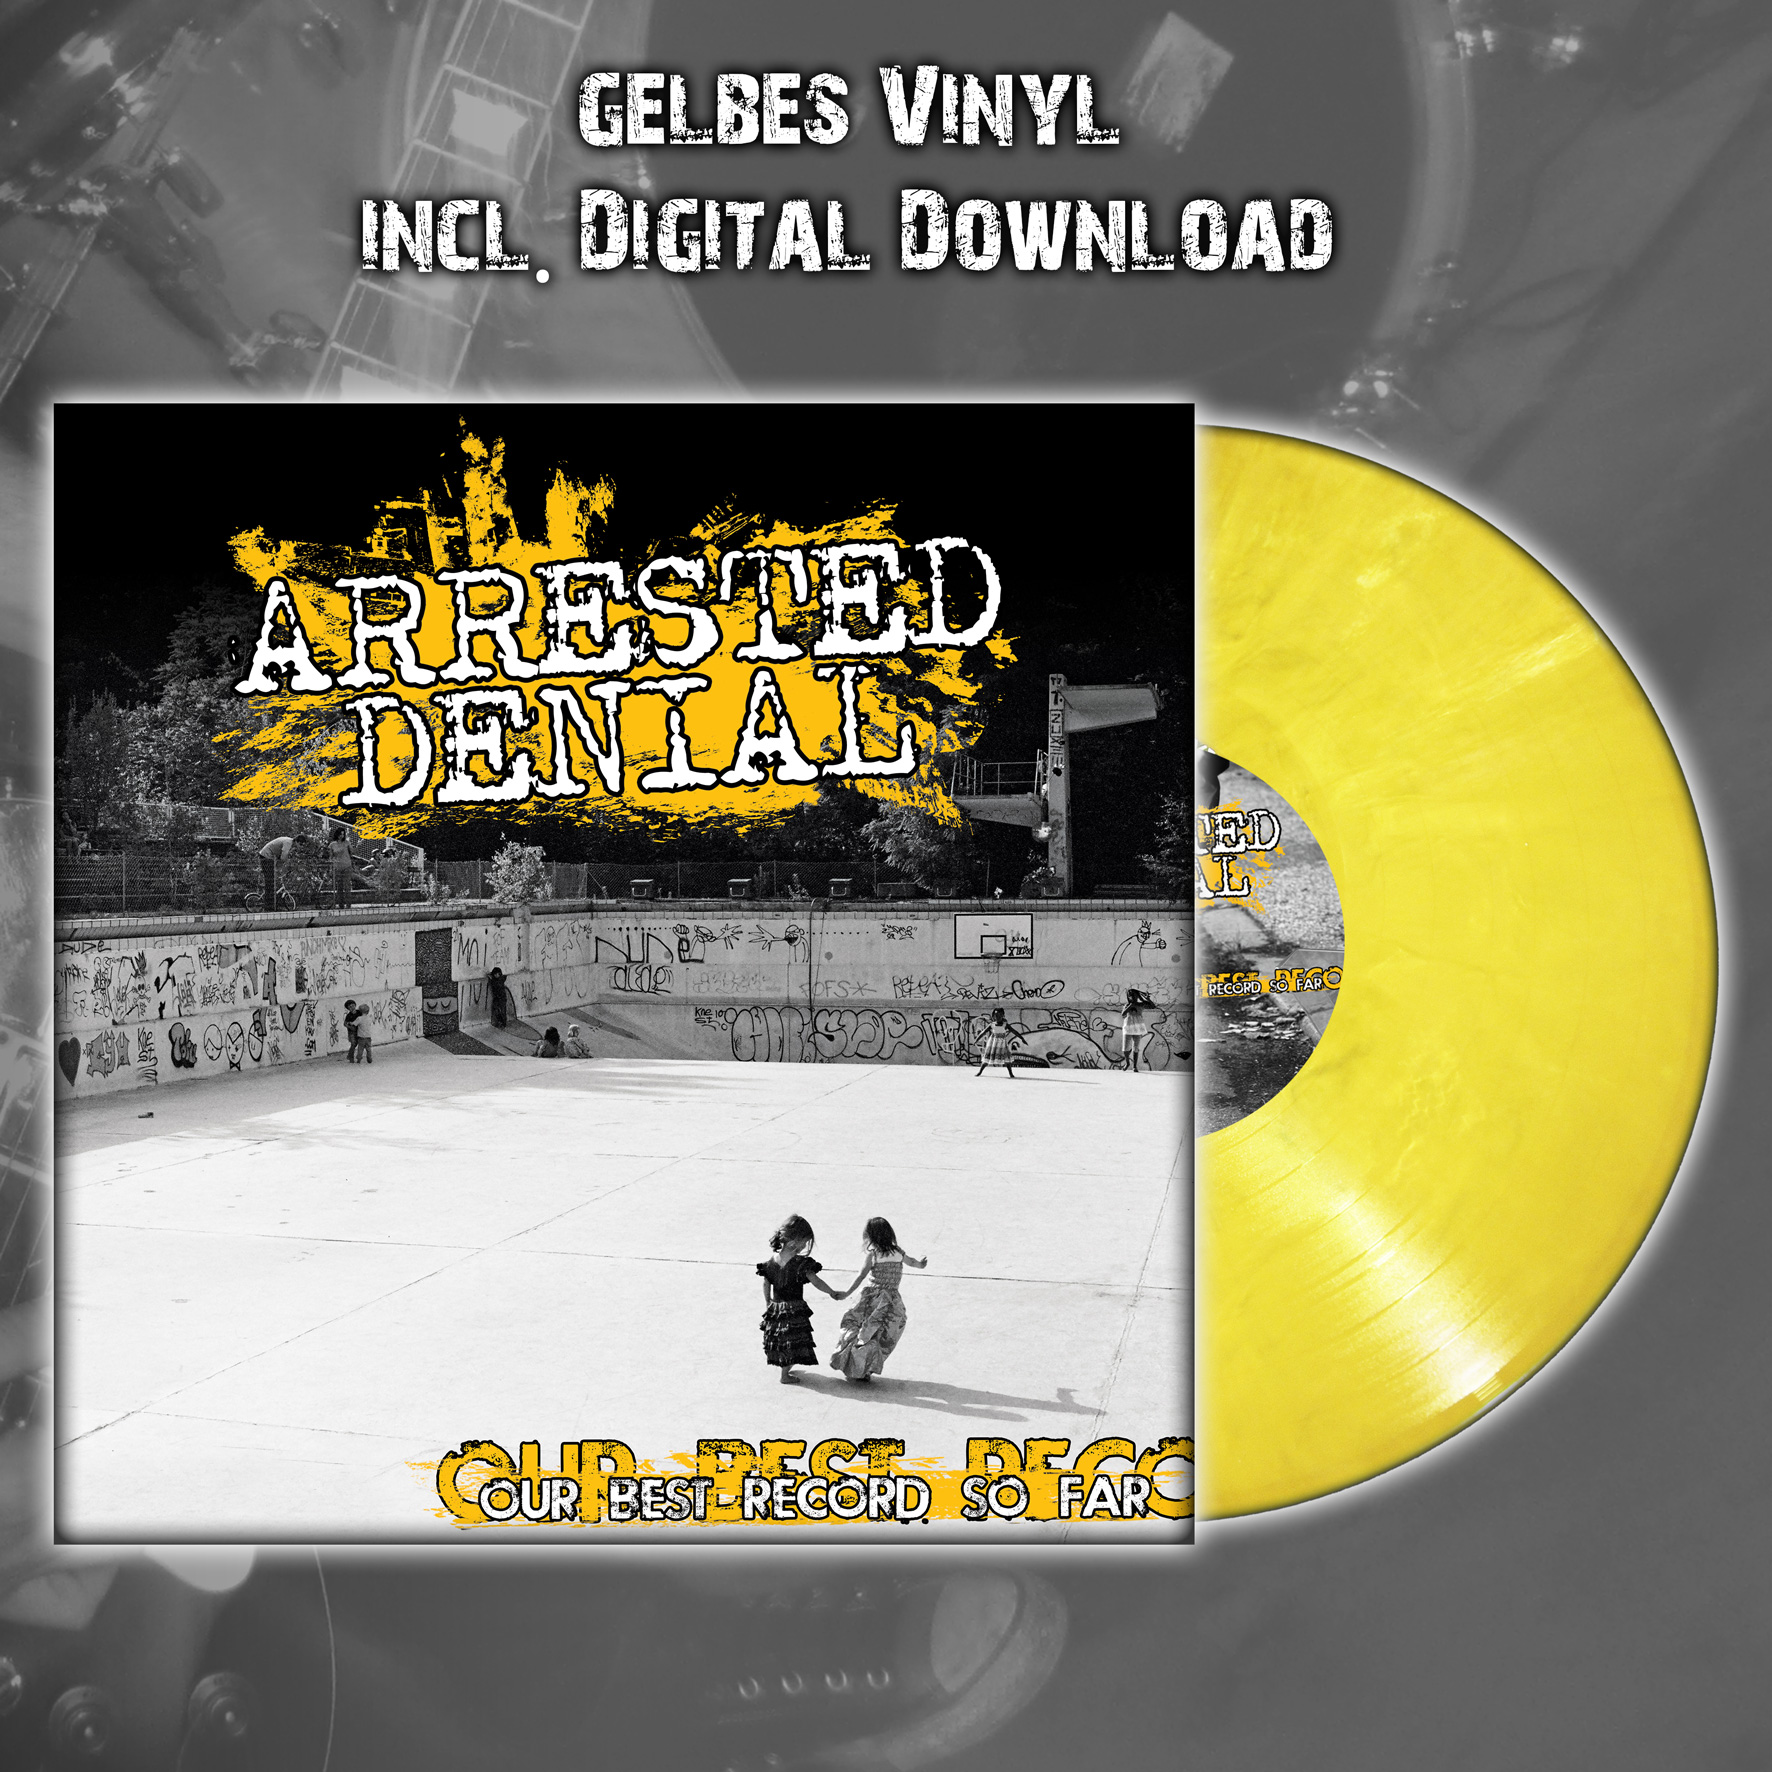 SOLD OUT - Our Best Record So Far (Vinyl)